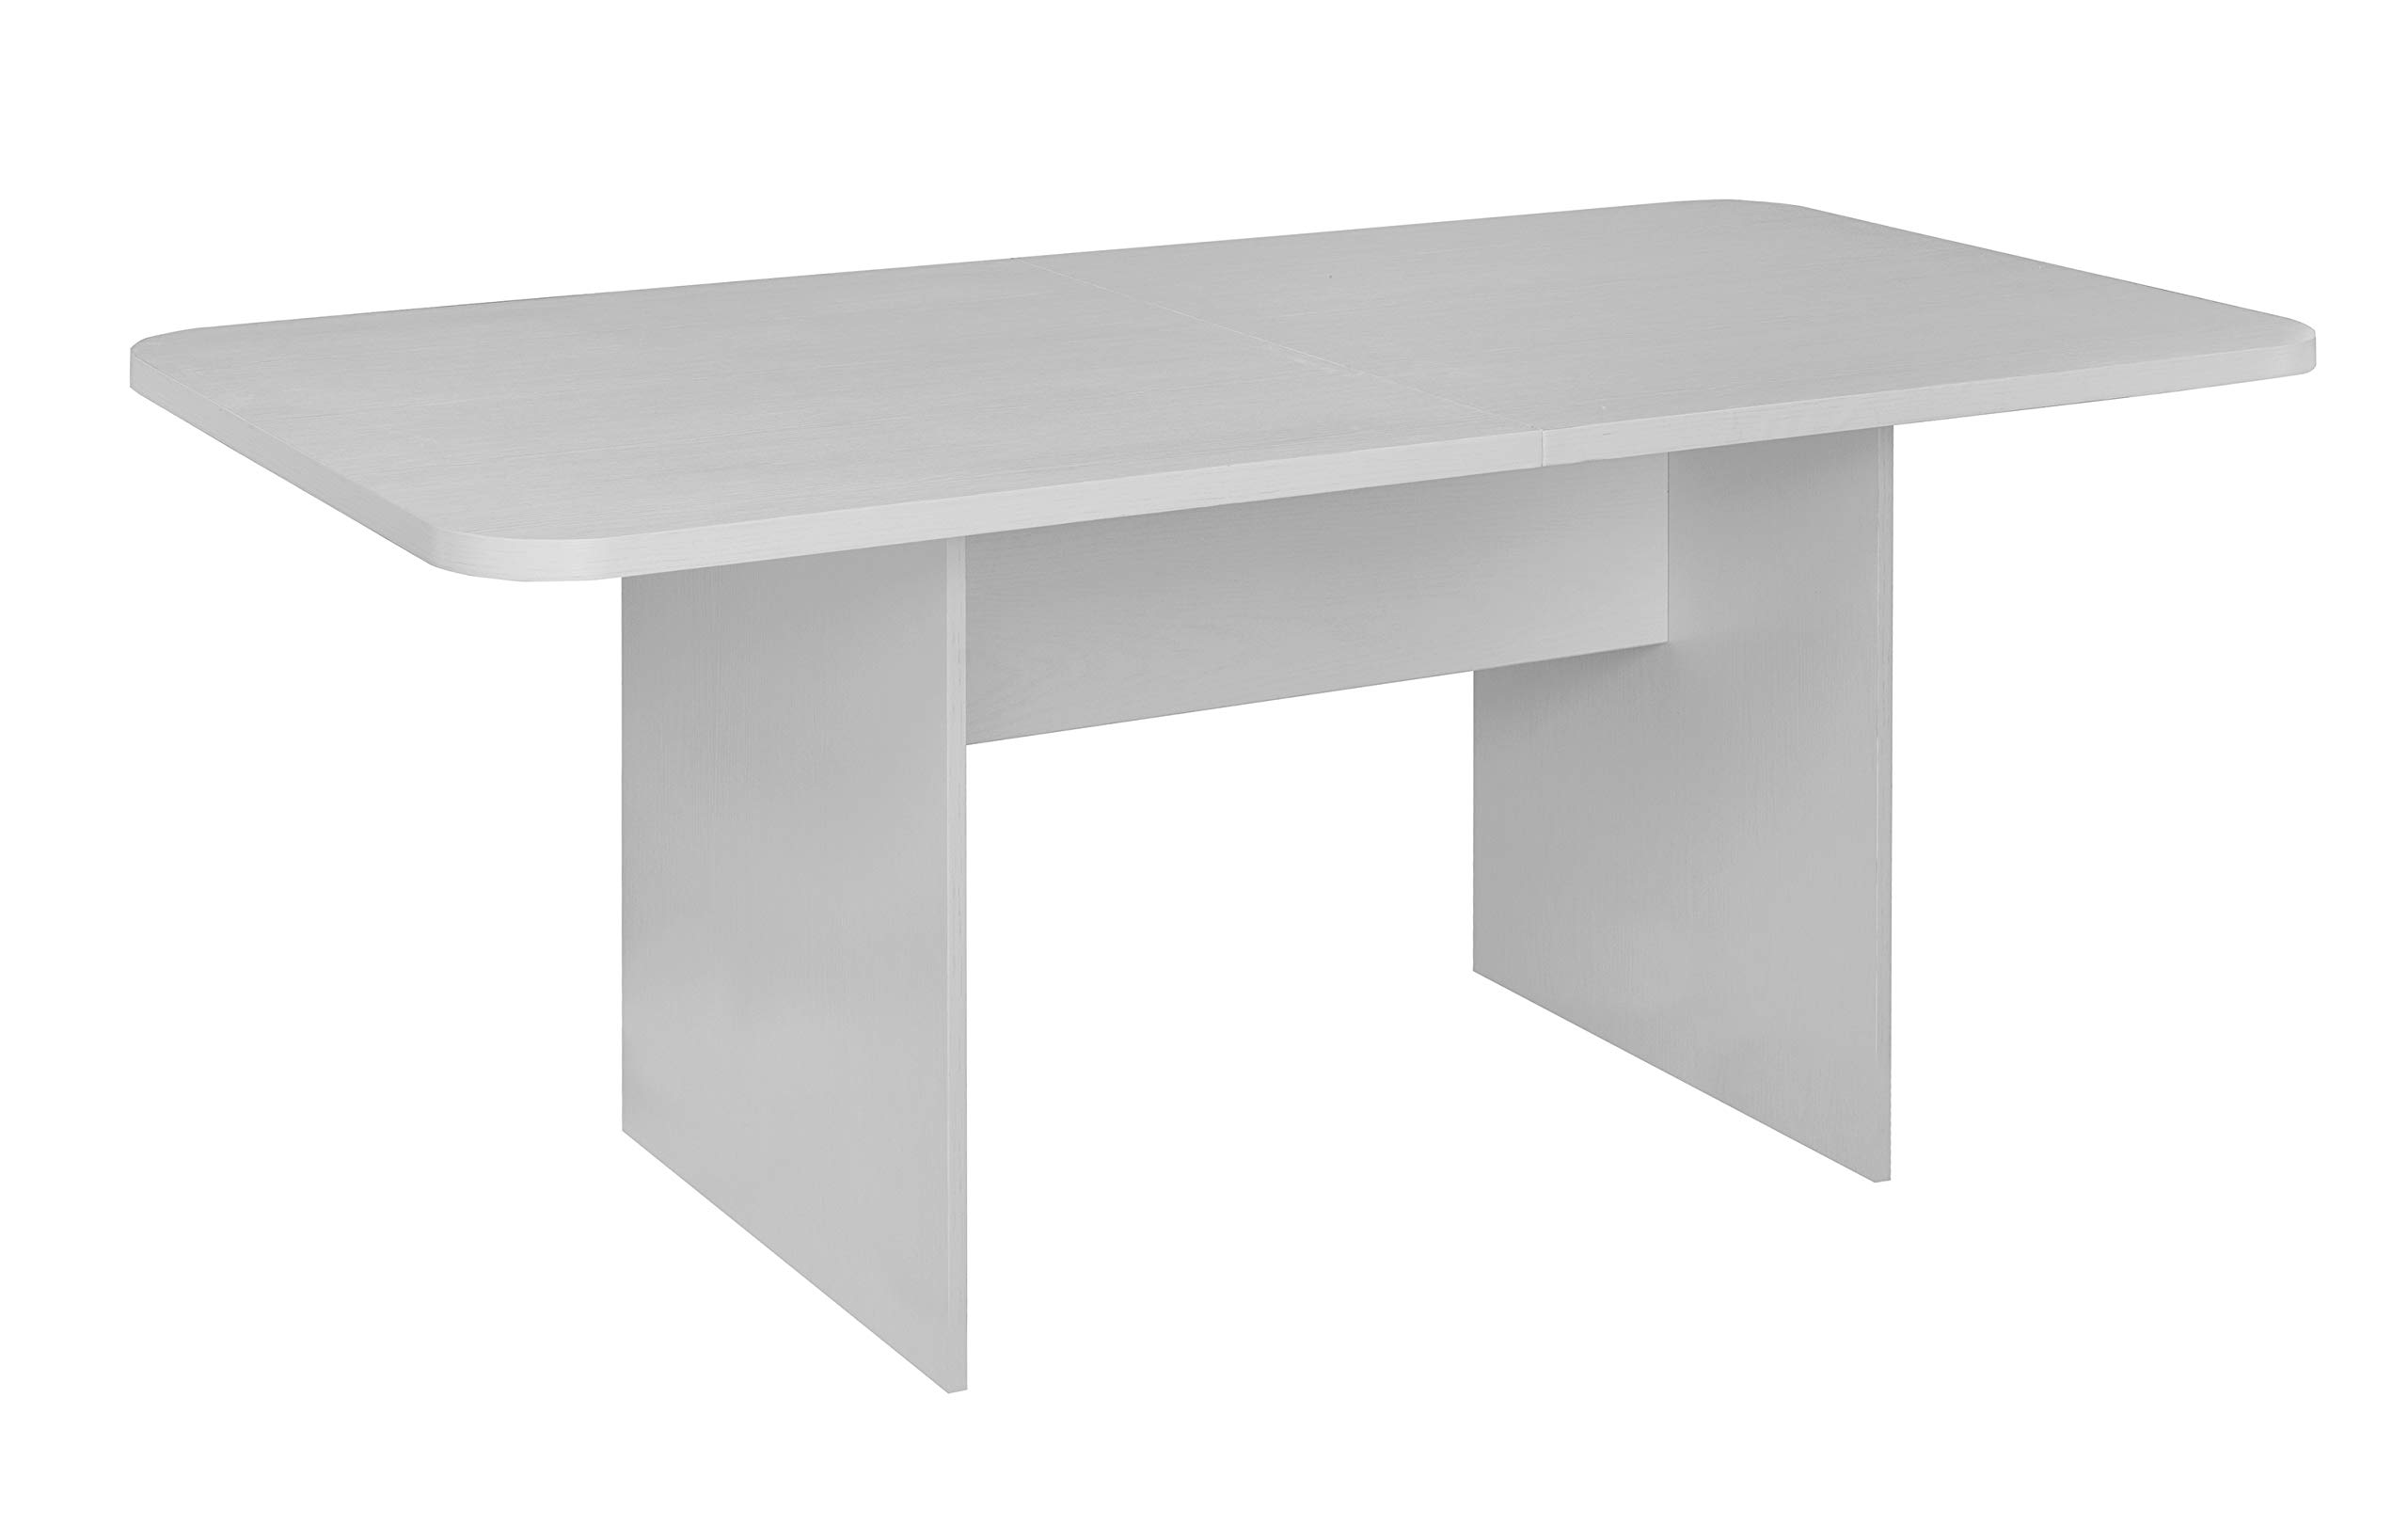 Niche NCT6834WH Mod Conference Table with No- with No-Tools Assembly, 6', White Wood Grain by Unknown